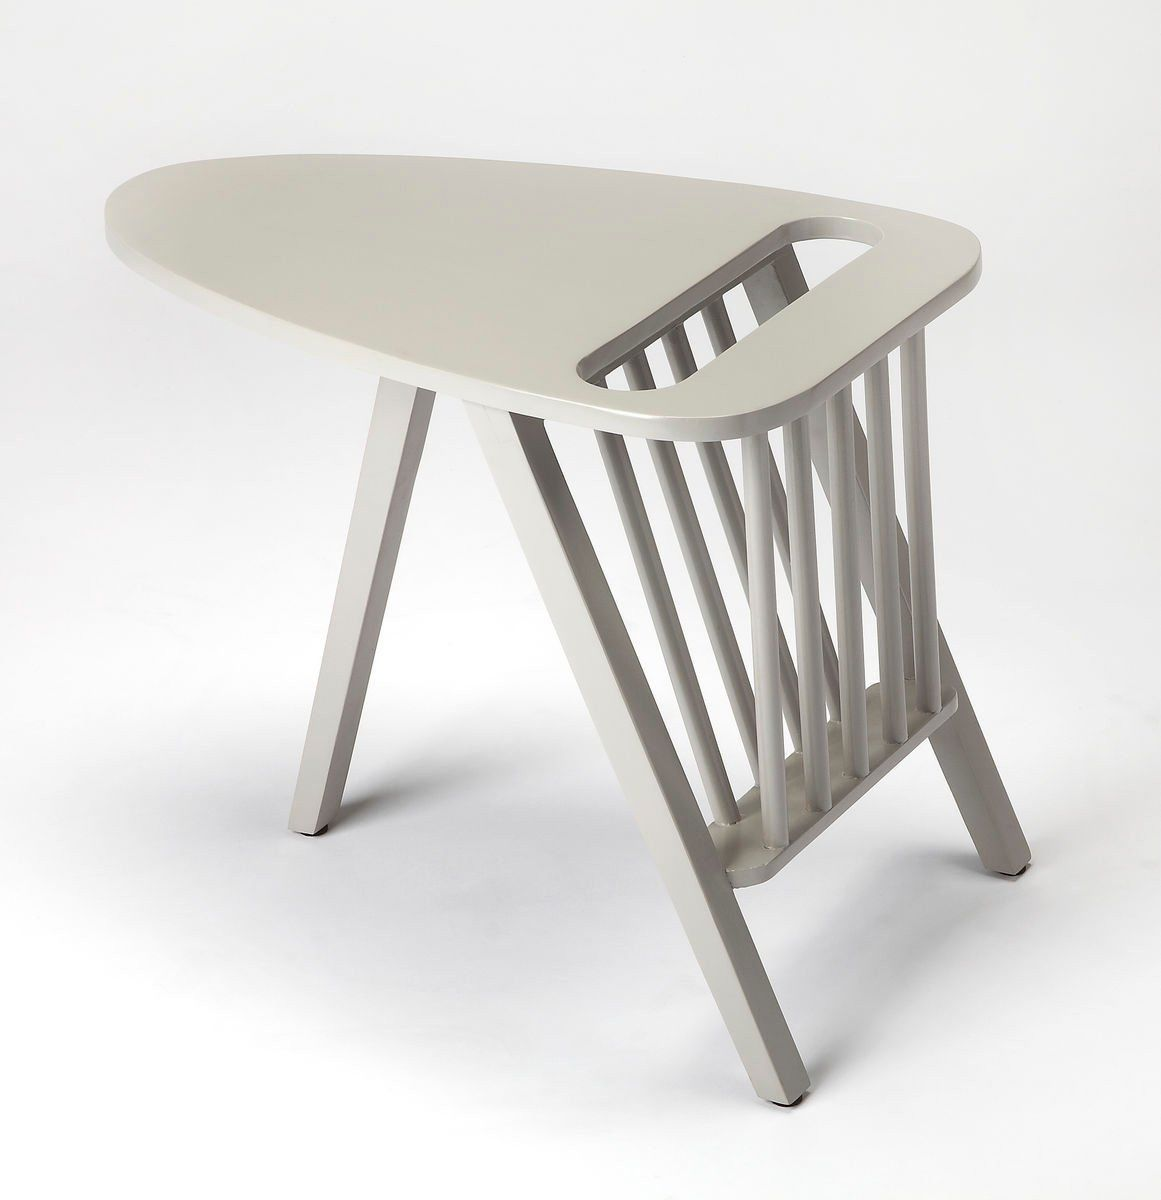 . Buy Butler Furniture BUT 1188266 Lowery Modern Triangular Magazine Table  Gray at Contemporary Furniture Warehouse